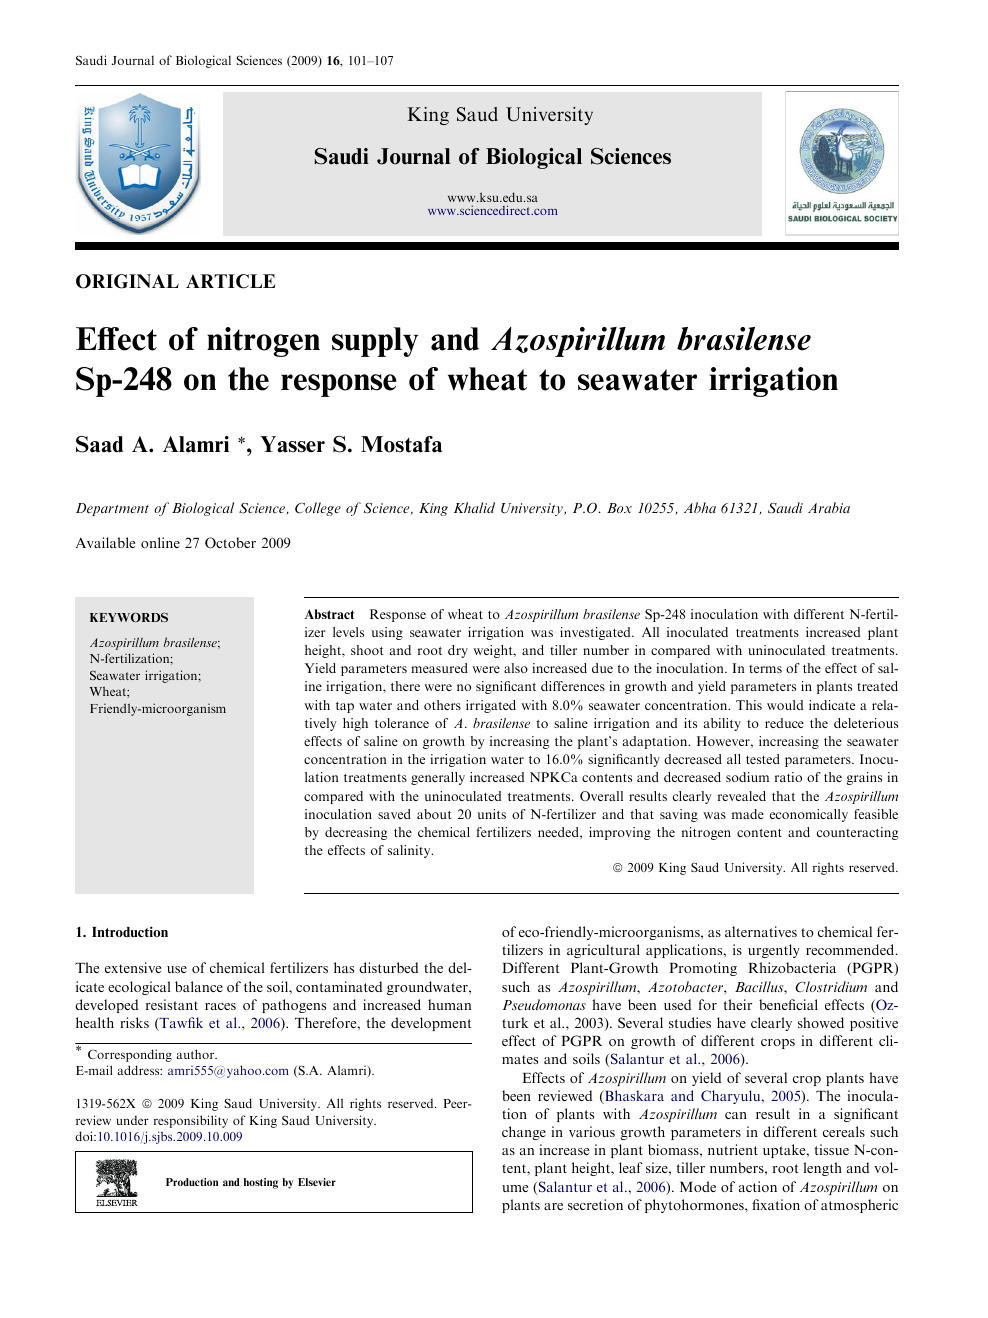 Effect of nitrogen supply and Azospirillum brasilense Sp-248